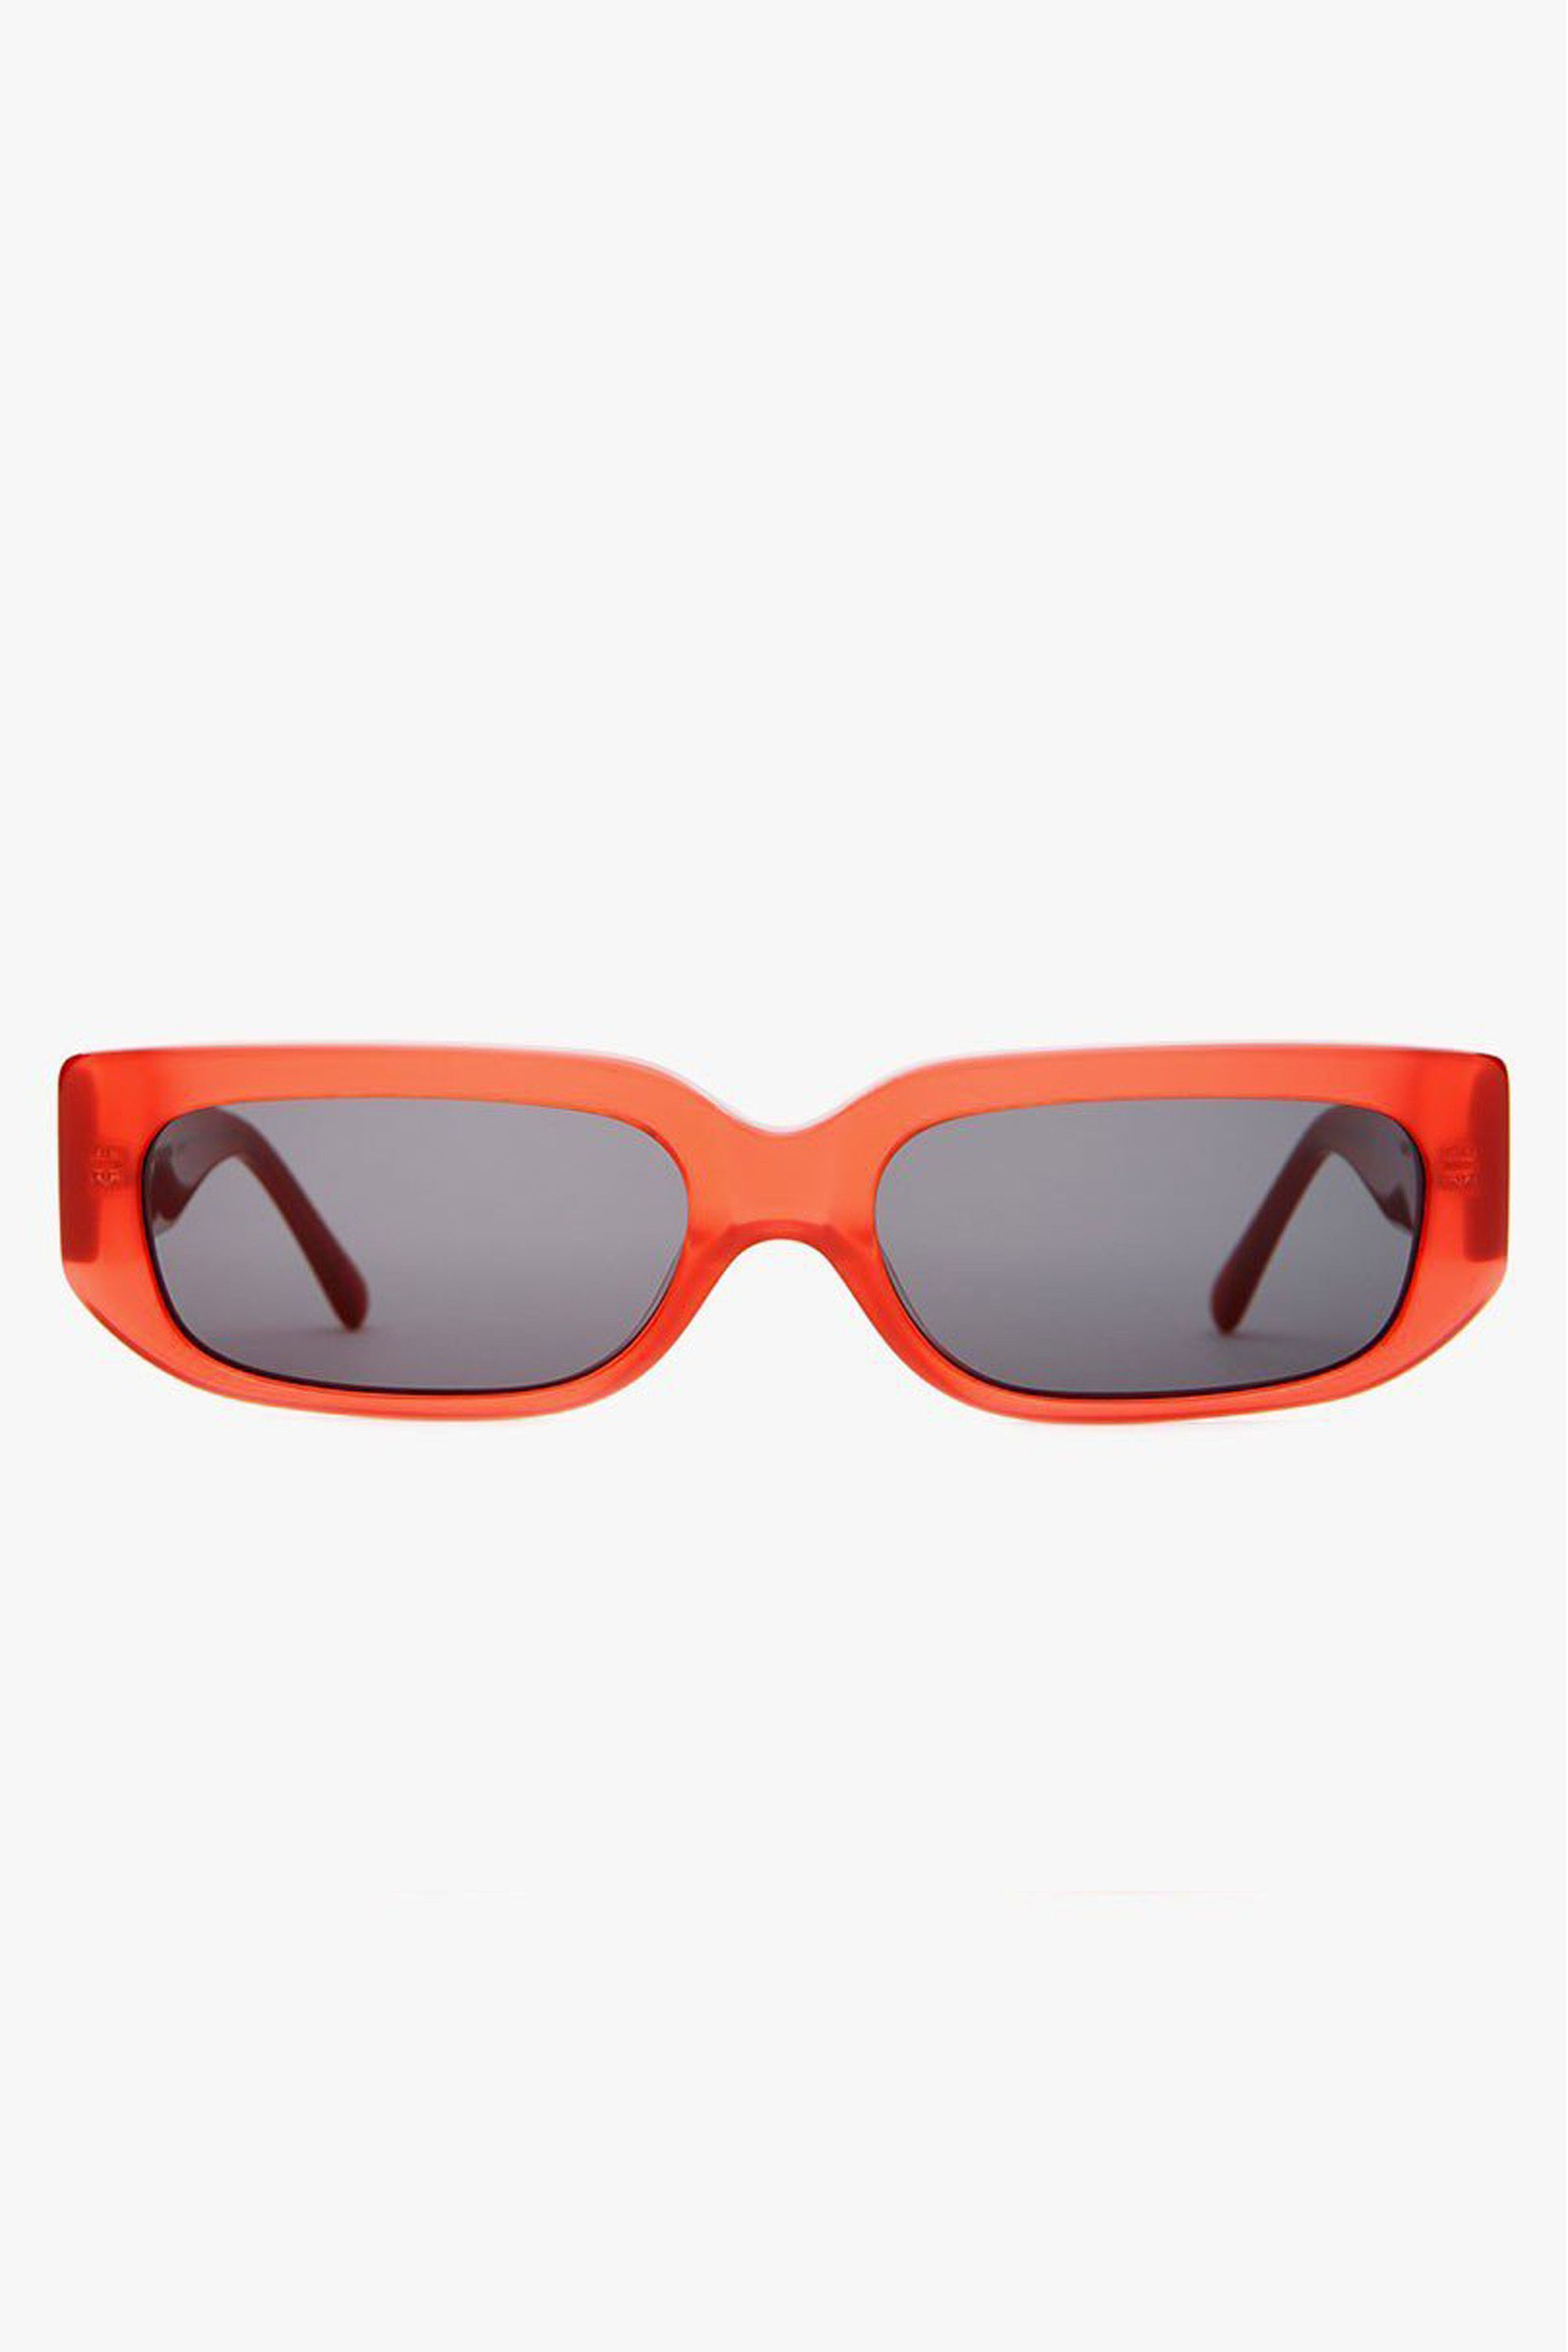 28e3f991b1 20 Types of Sunglasses — Different Sunglass Shapes and Styles